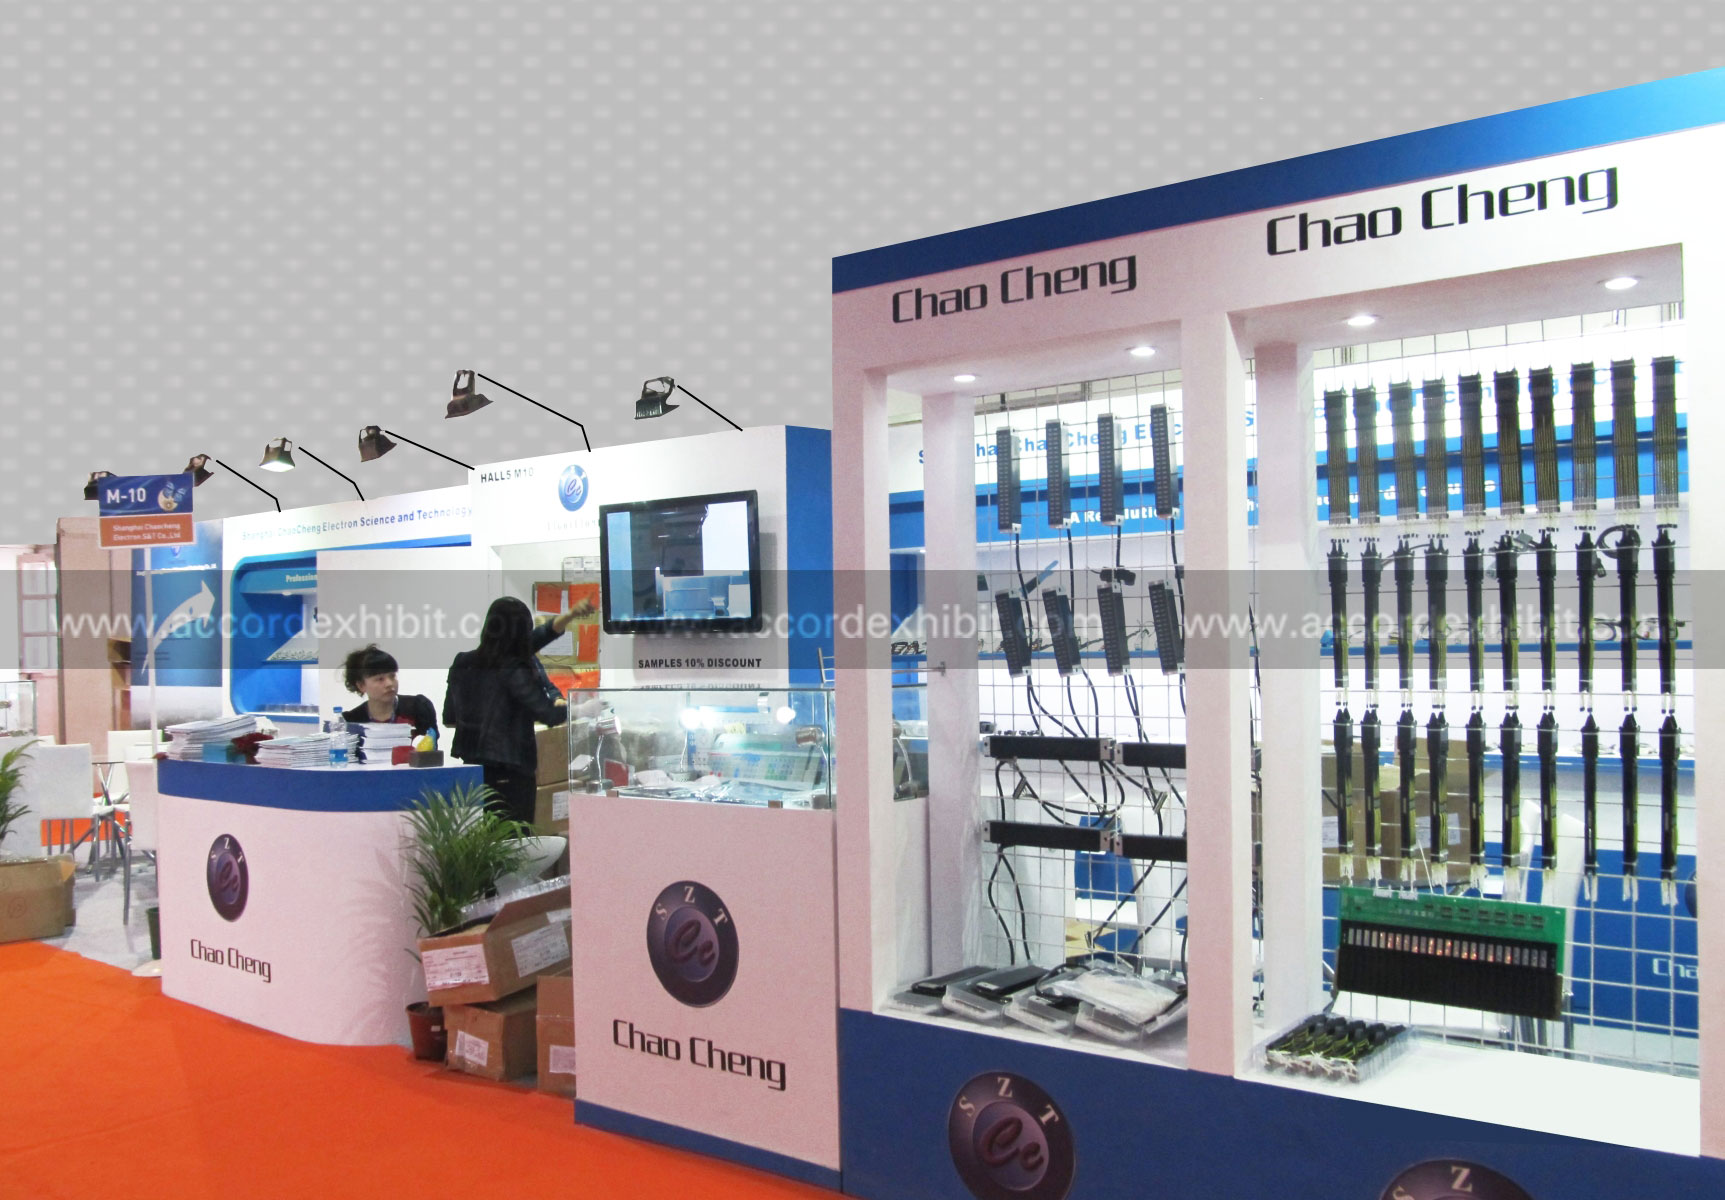 Exhibition Stall for Chao Cheng